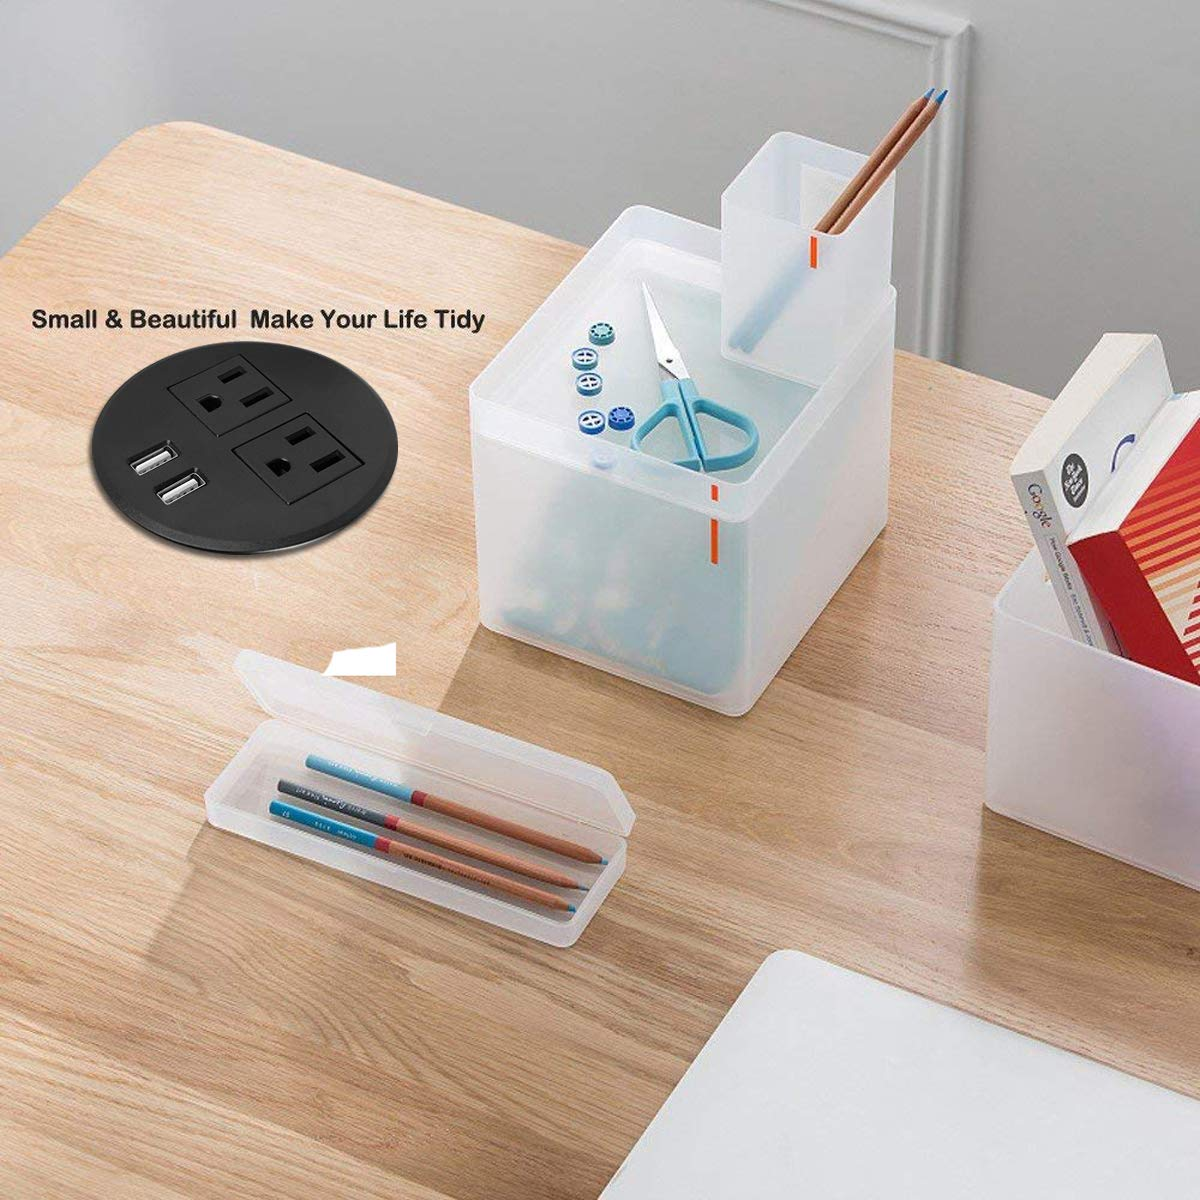 Desk Power Grommet with USB Charger,Hidden Power Socket,Recessed Hole Grommet Outlet,Mountable into 3 1//8 Inch Hole,Easy Access to 2 Plug Along